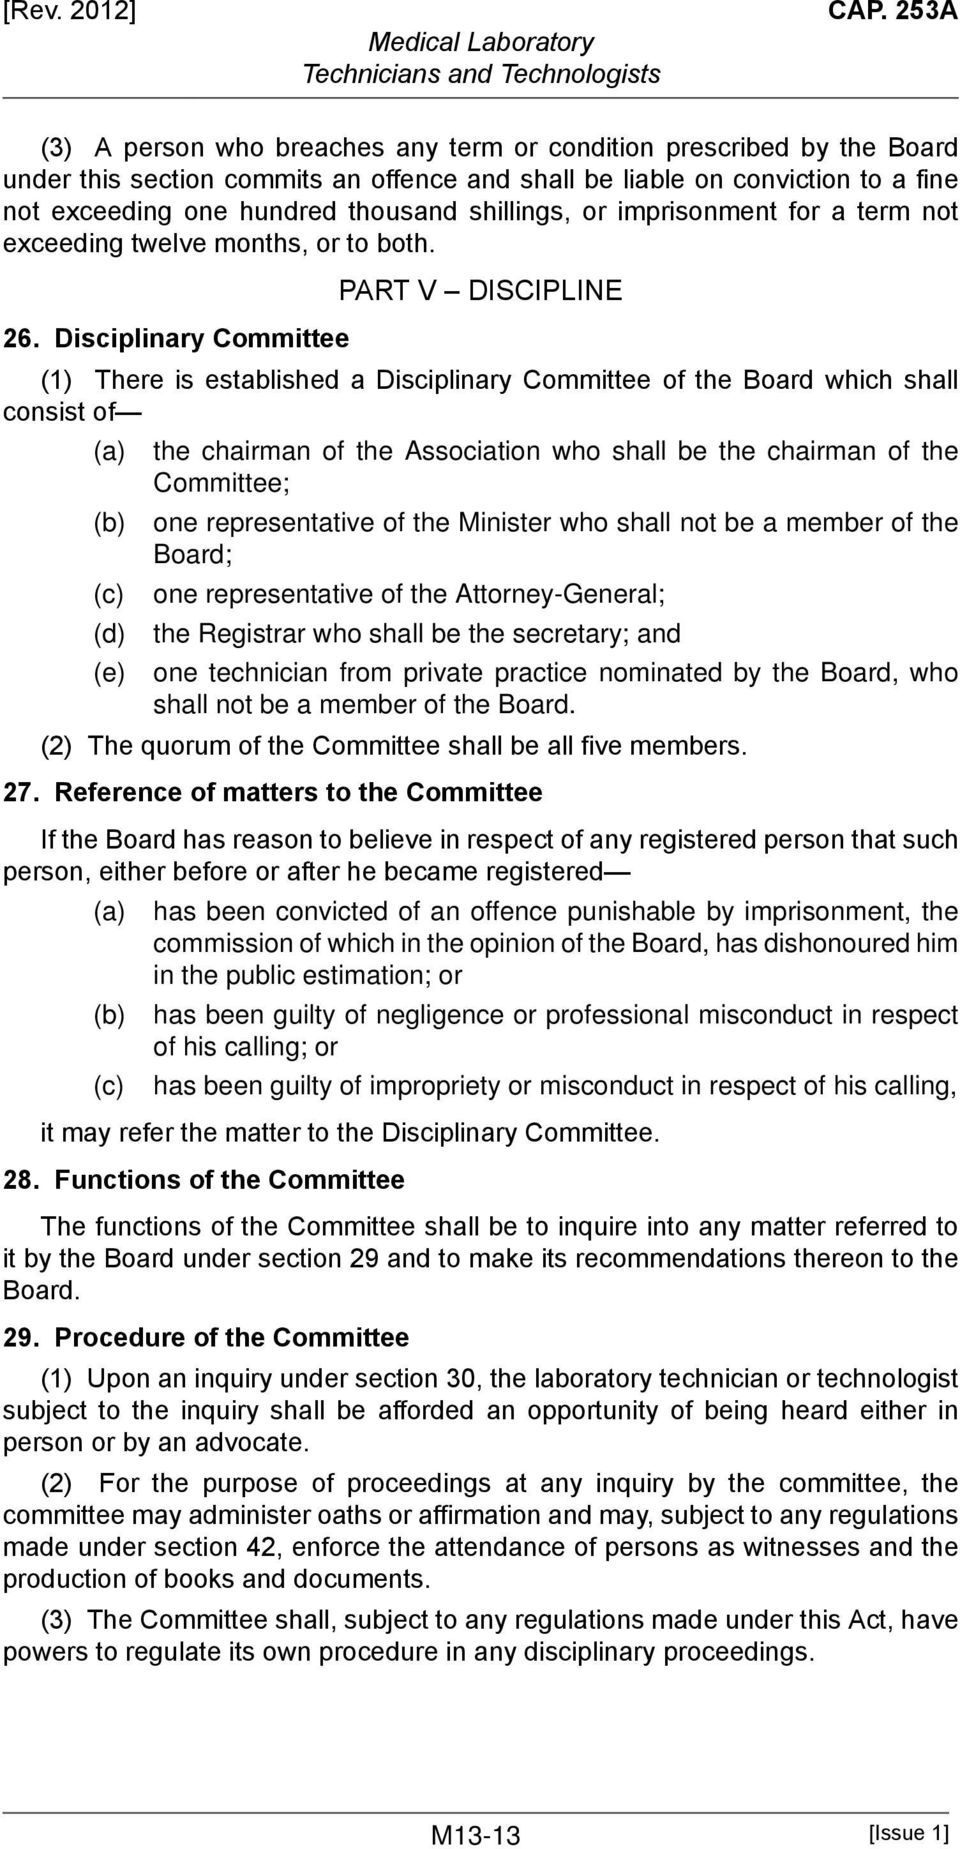 Disciplinary Committee PART V DISCIPLINE (1) There is established a Disciplinary Committee of the Board which shall consist of (d) (e) the chairman of the Association who shall be the chairman of the